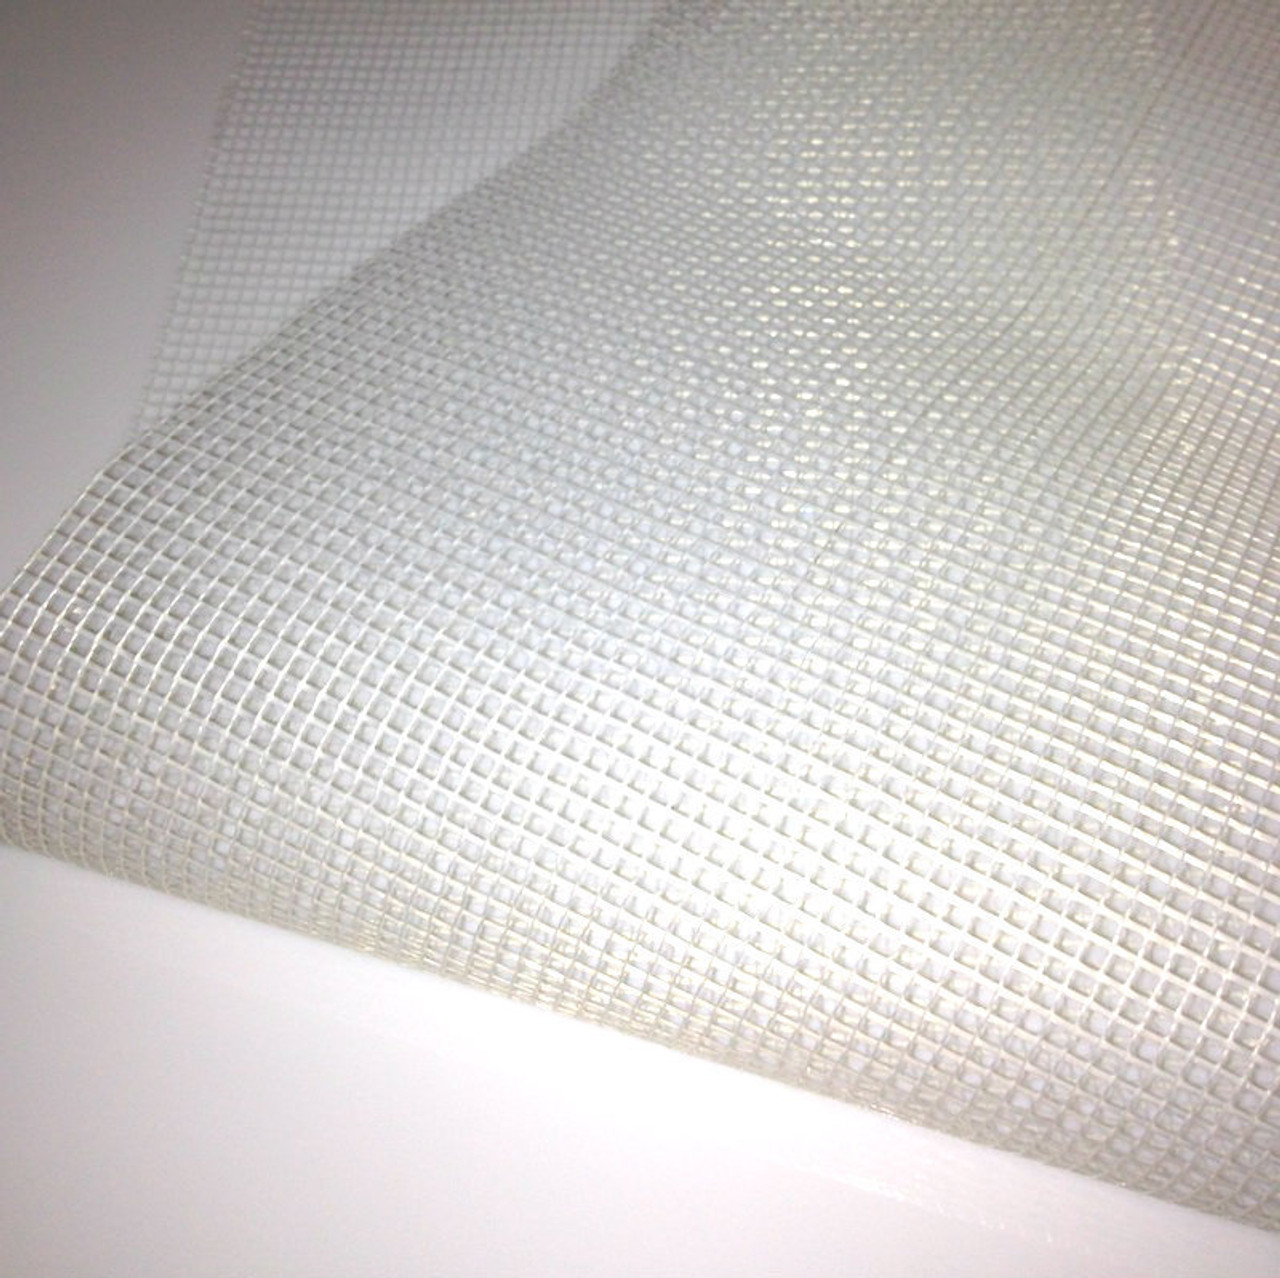 "9"" x 30' Self-Adhesive Fiberglass Mesh for Mosaic Tiles - Save 5%"